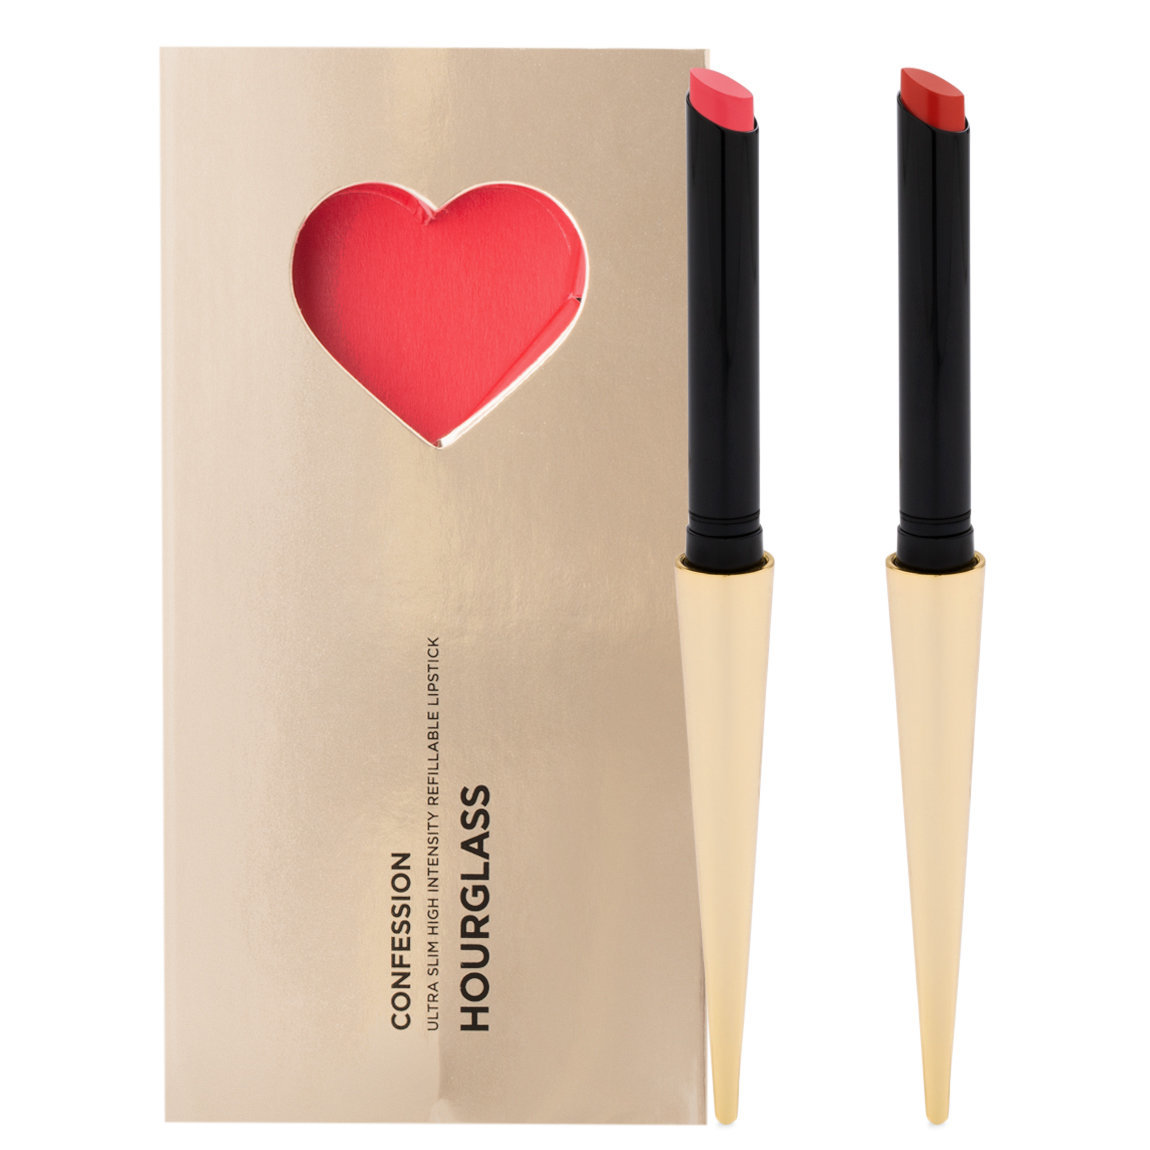 Hourglass Confession Ultra Slim High Intensity Refillable Lipstick Valentine's Day Set product smear.